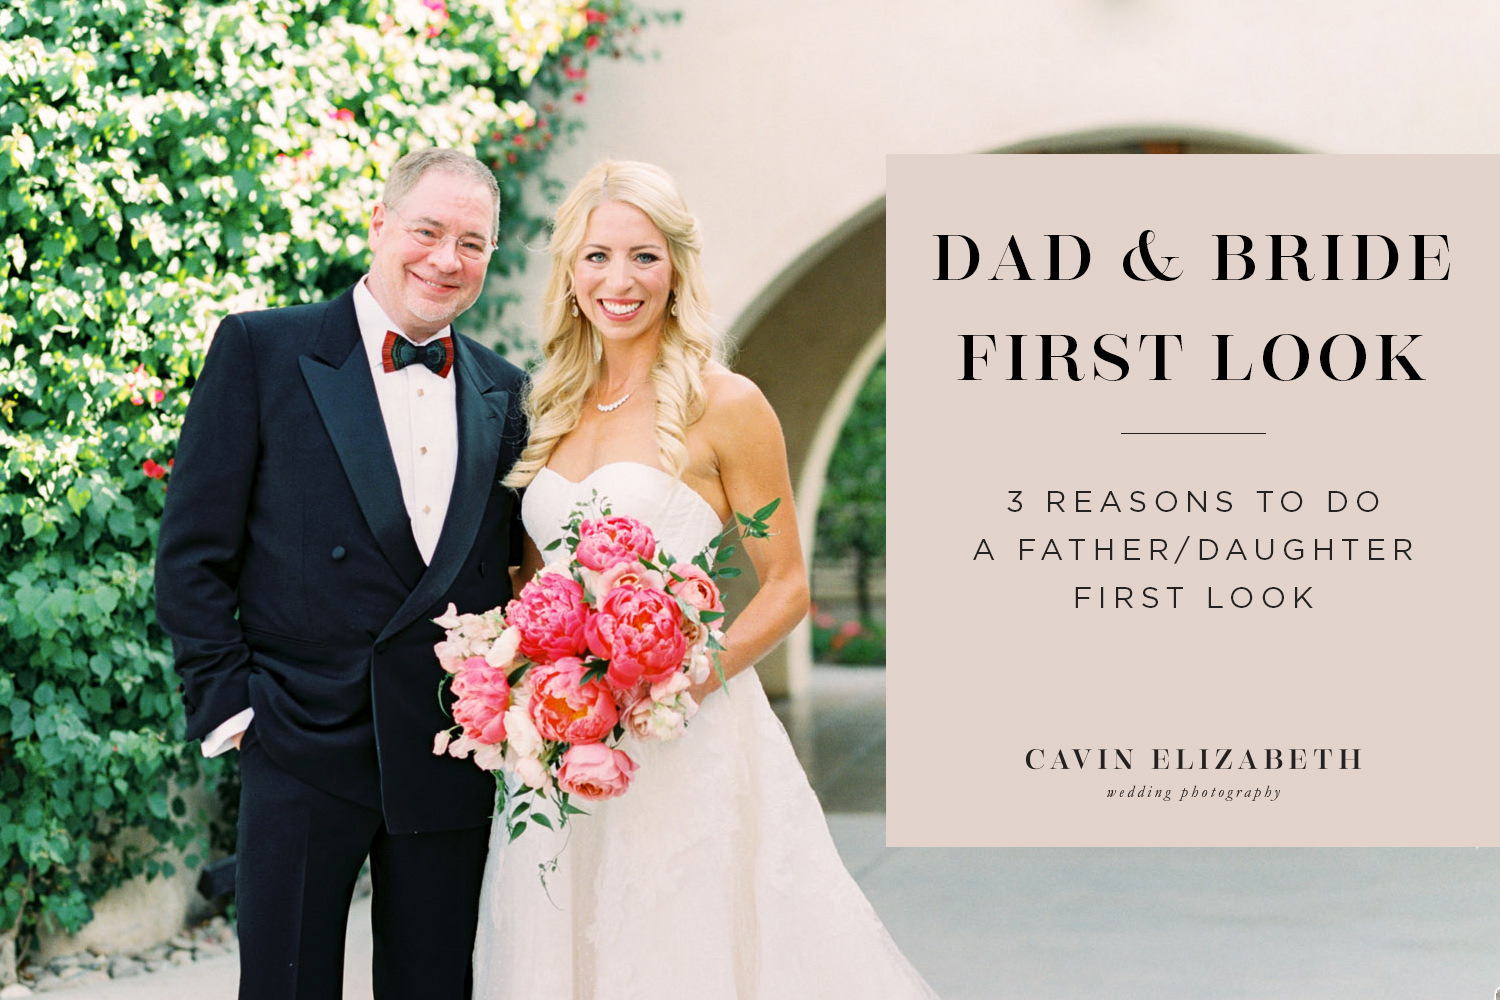 3 Reasons Why You Should Do a Father Daughter First Look